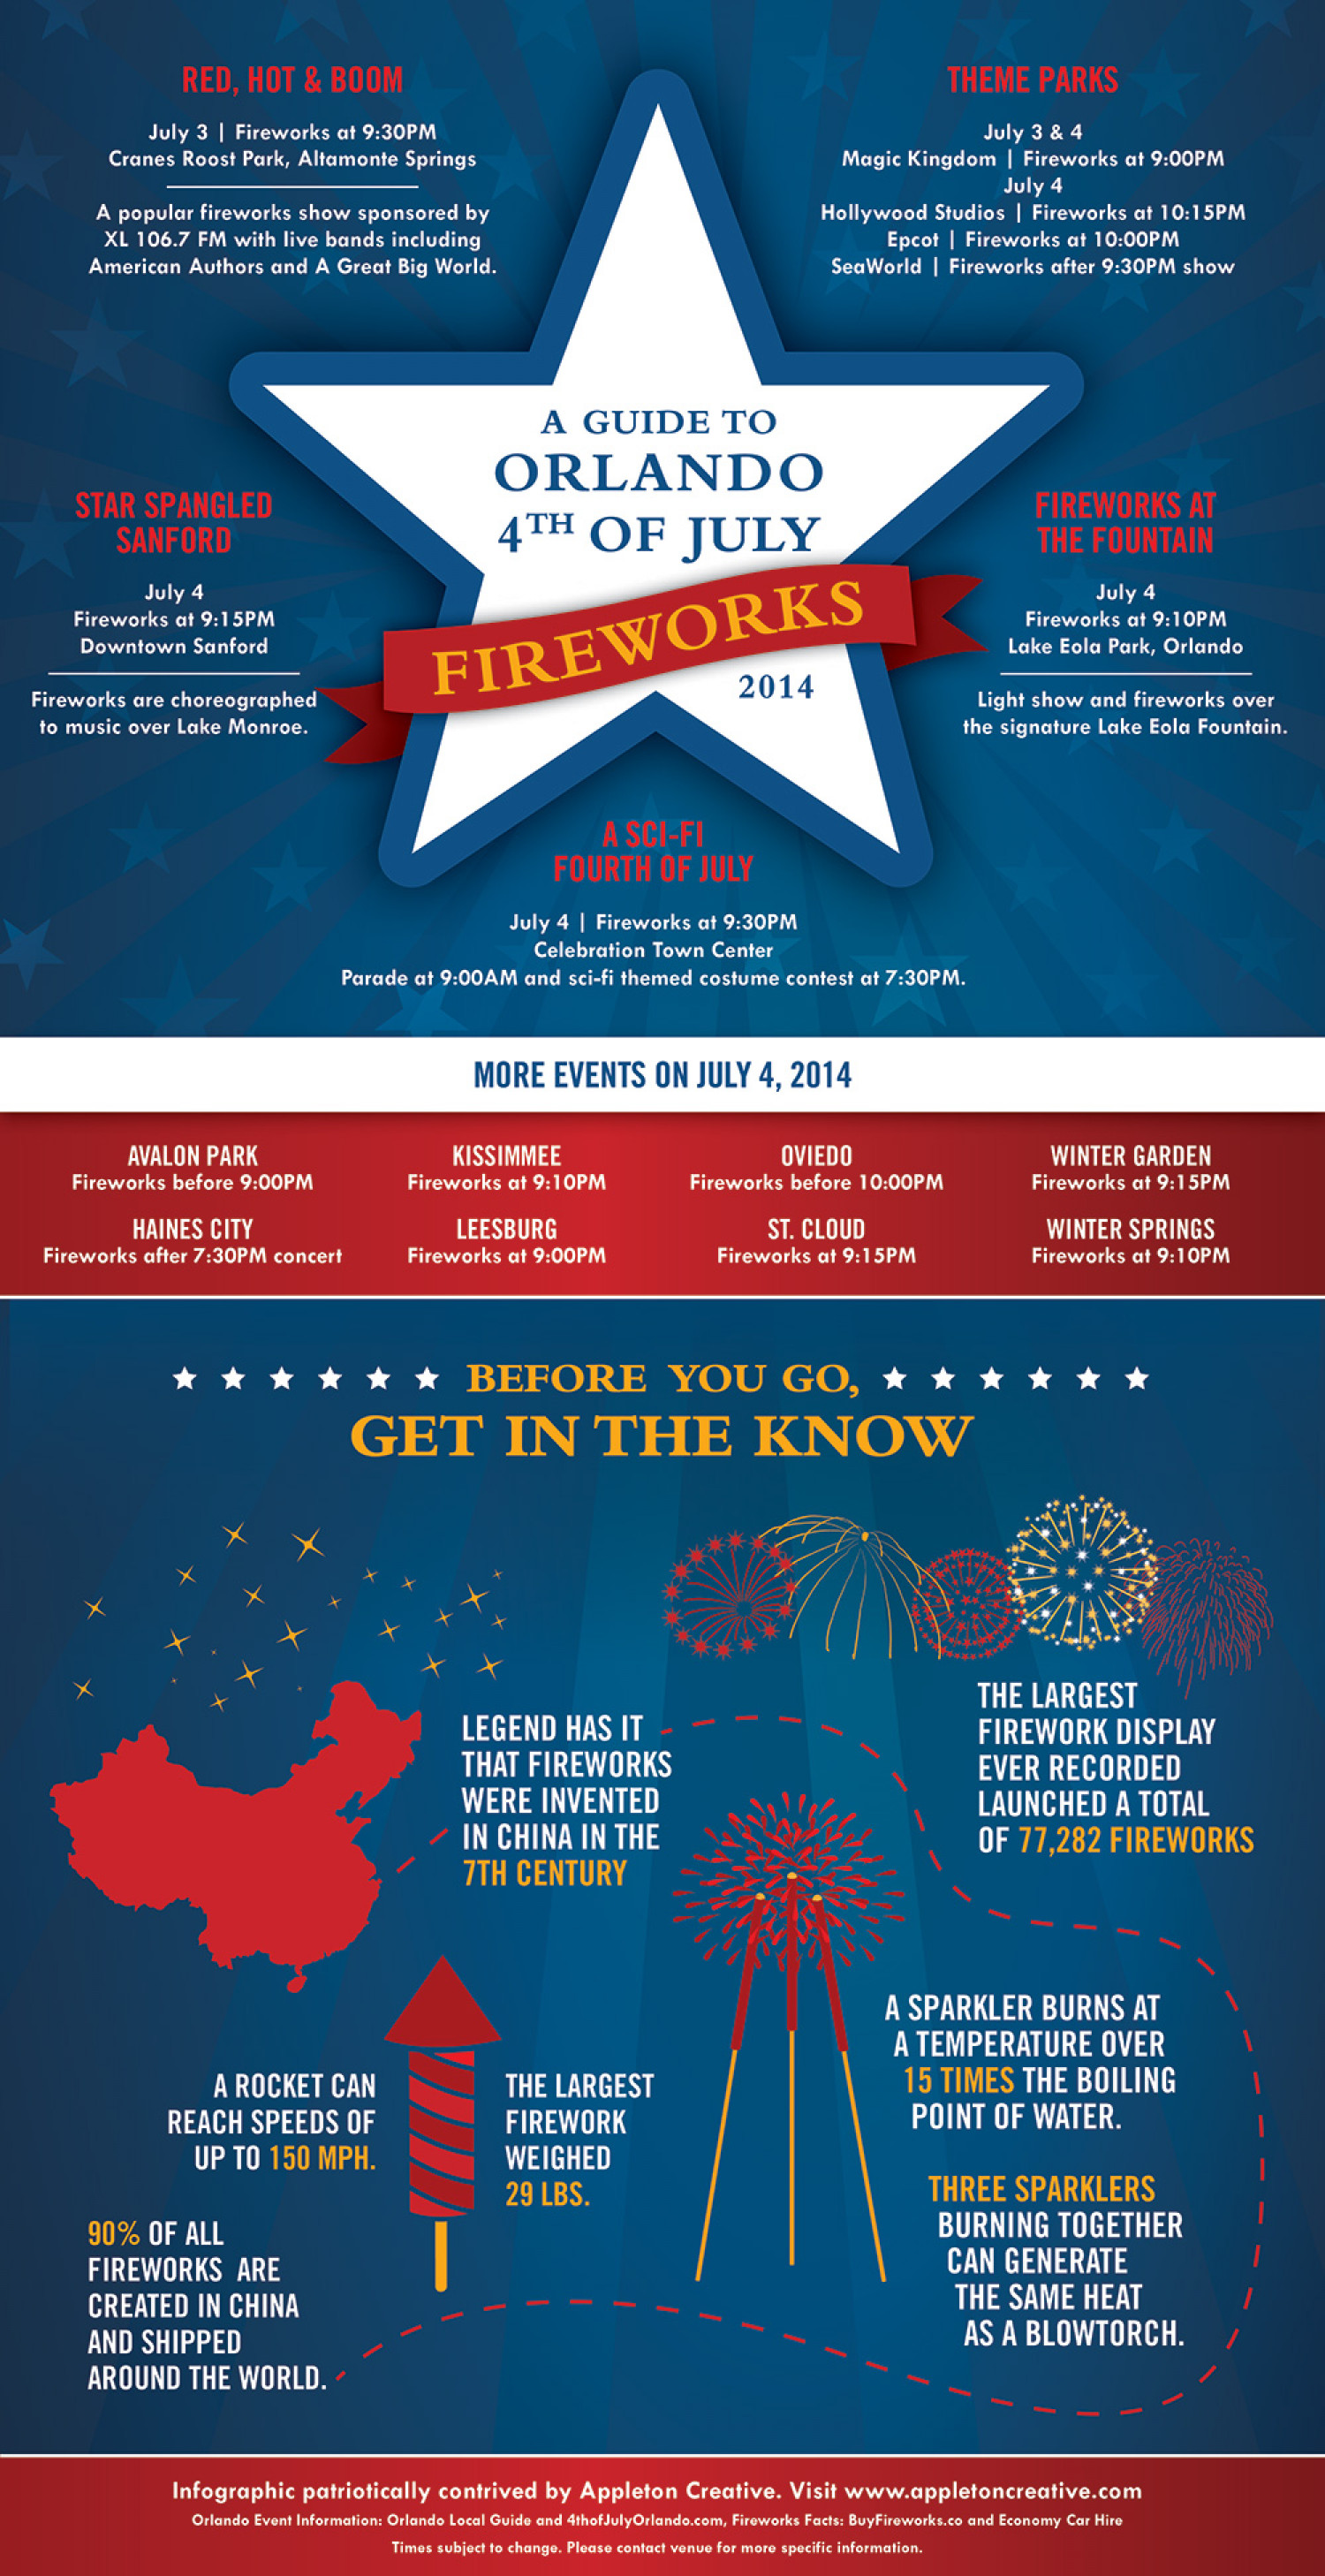 A Guide to Orlando 4th of July Fireworks 2014 Infographic